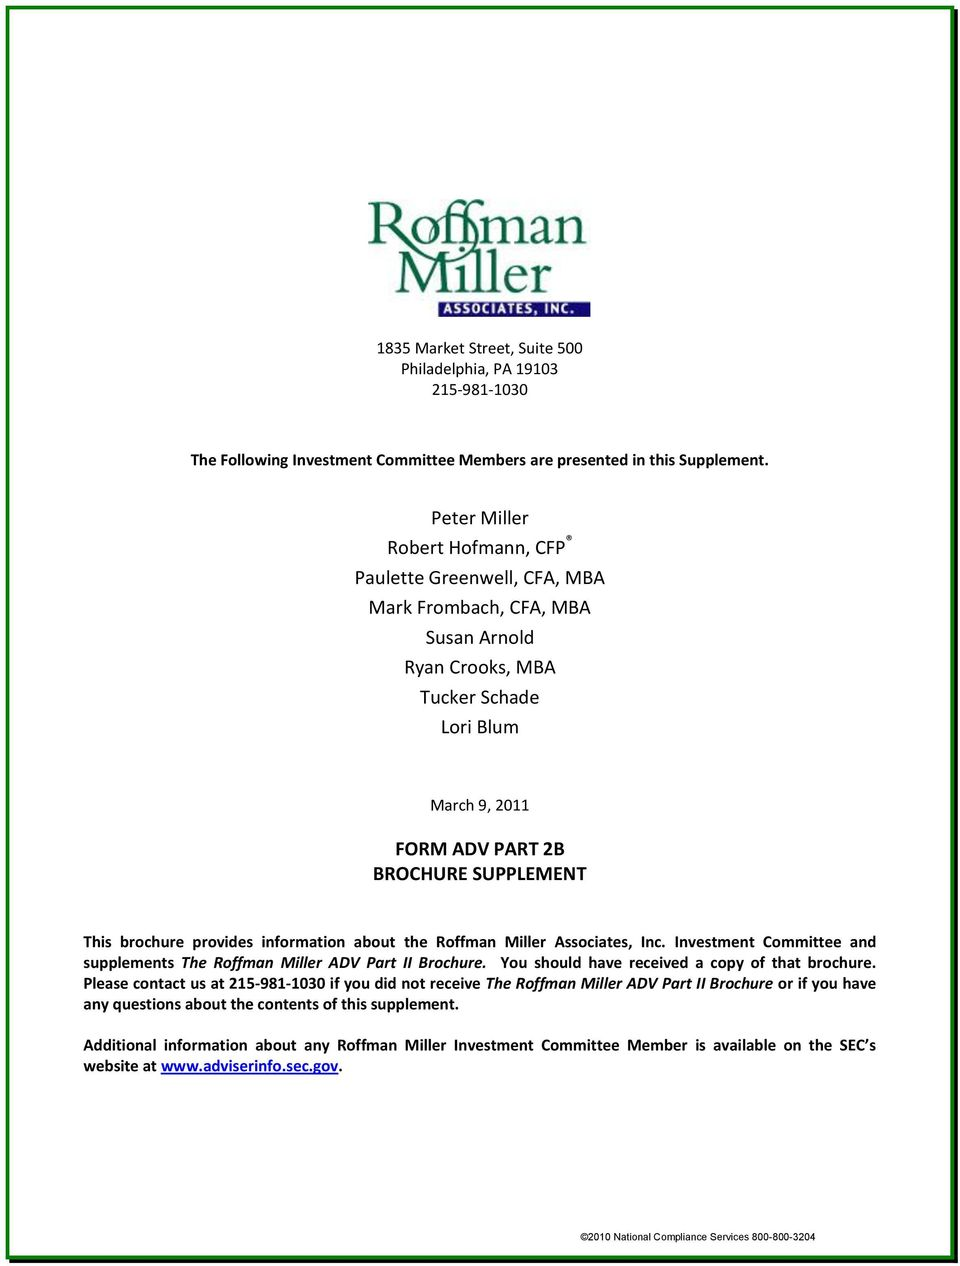 brochure provides information about the Roffman Miller Associates, Inc. Investment Committee and supplements The Roffman Miller ADV Part II Brochure. You should have received a copy of that brochure.